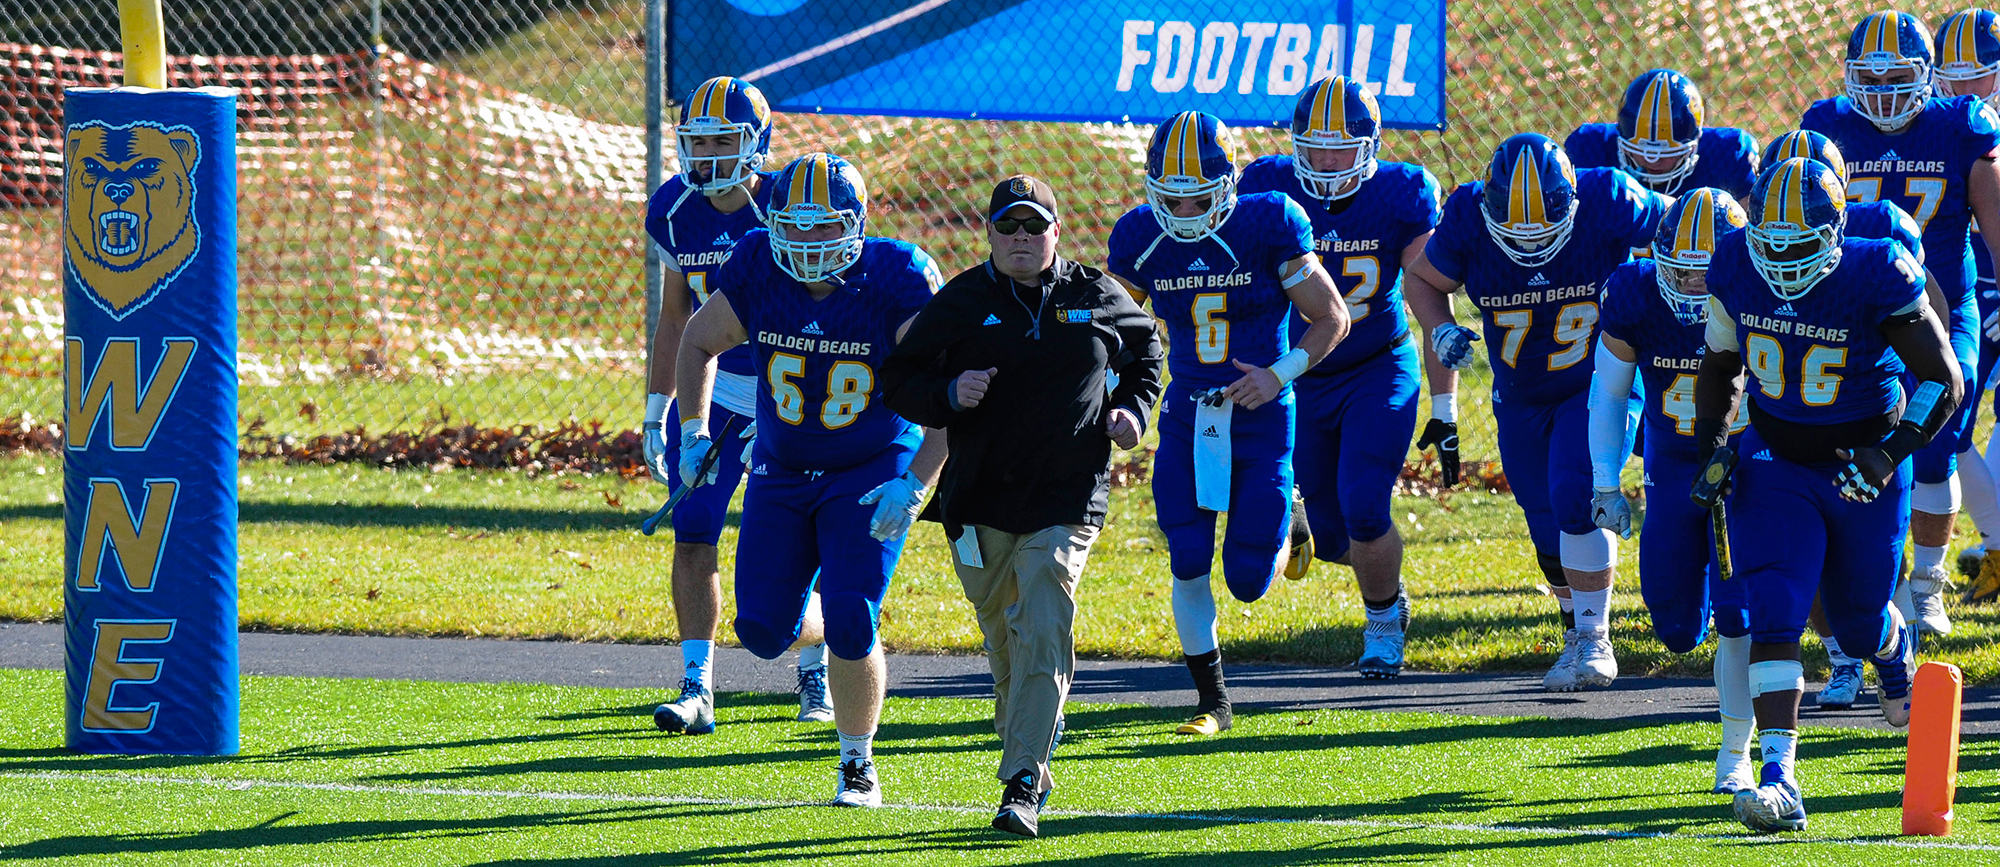 Western New England Receives Preseason National Rankings from D3football.com & Lindy's Sports